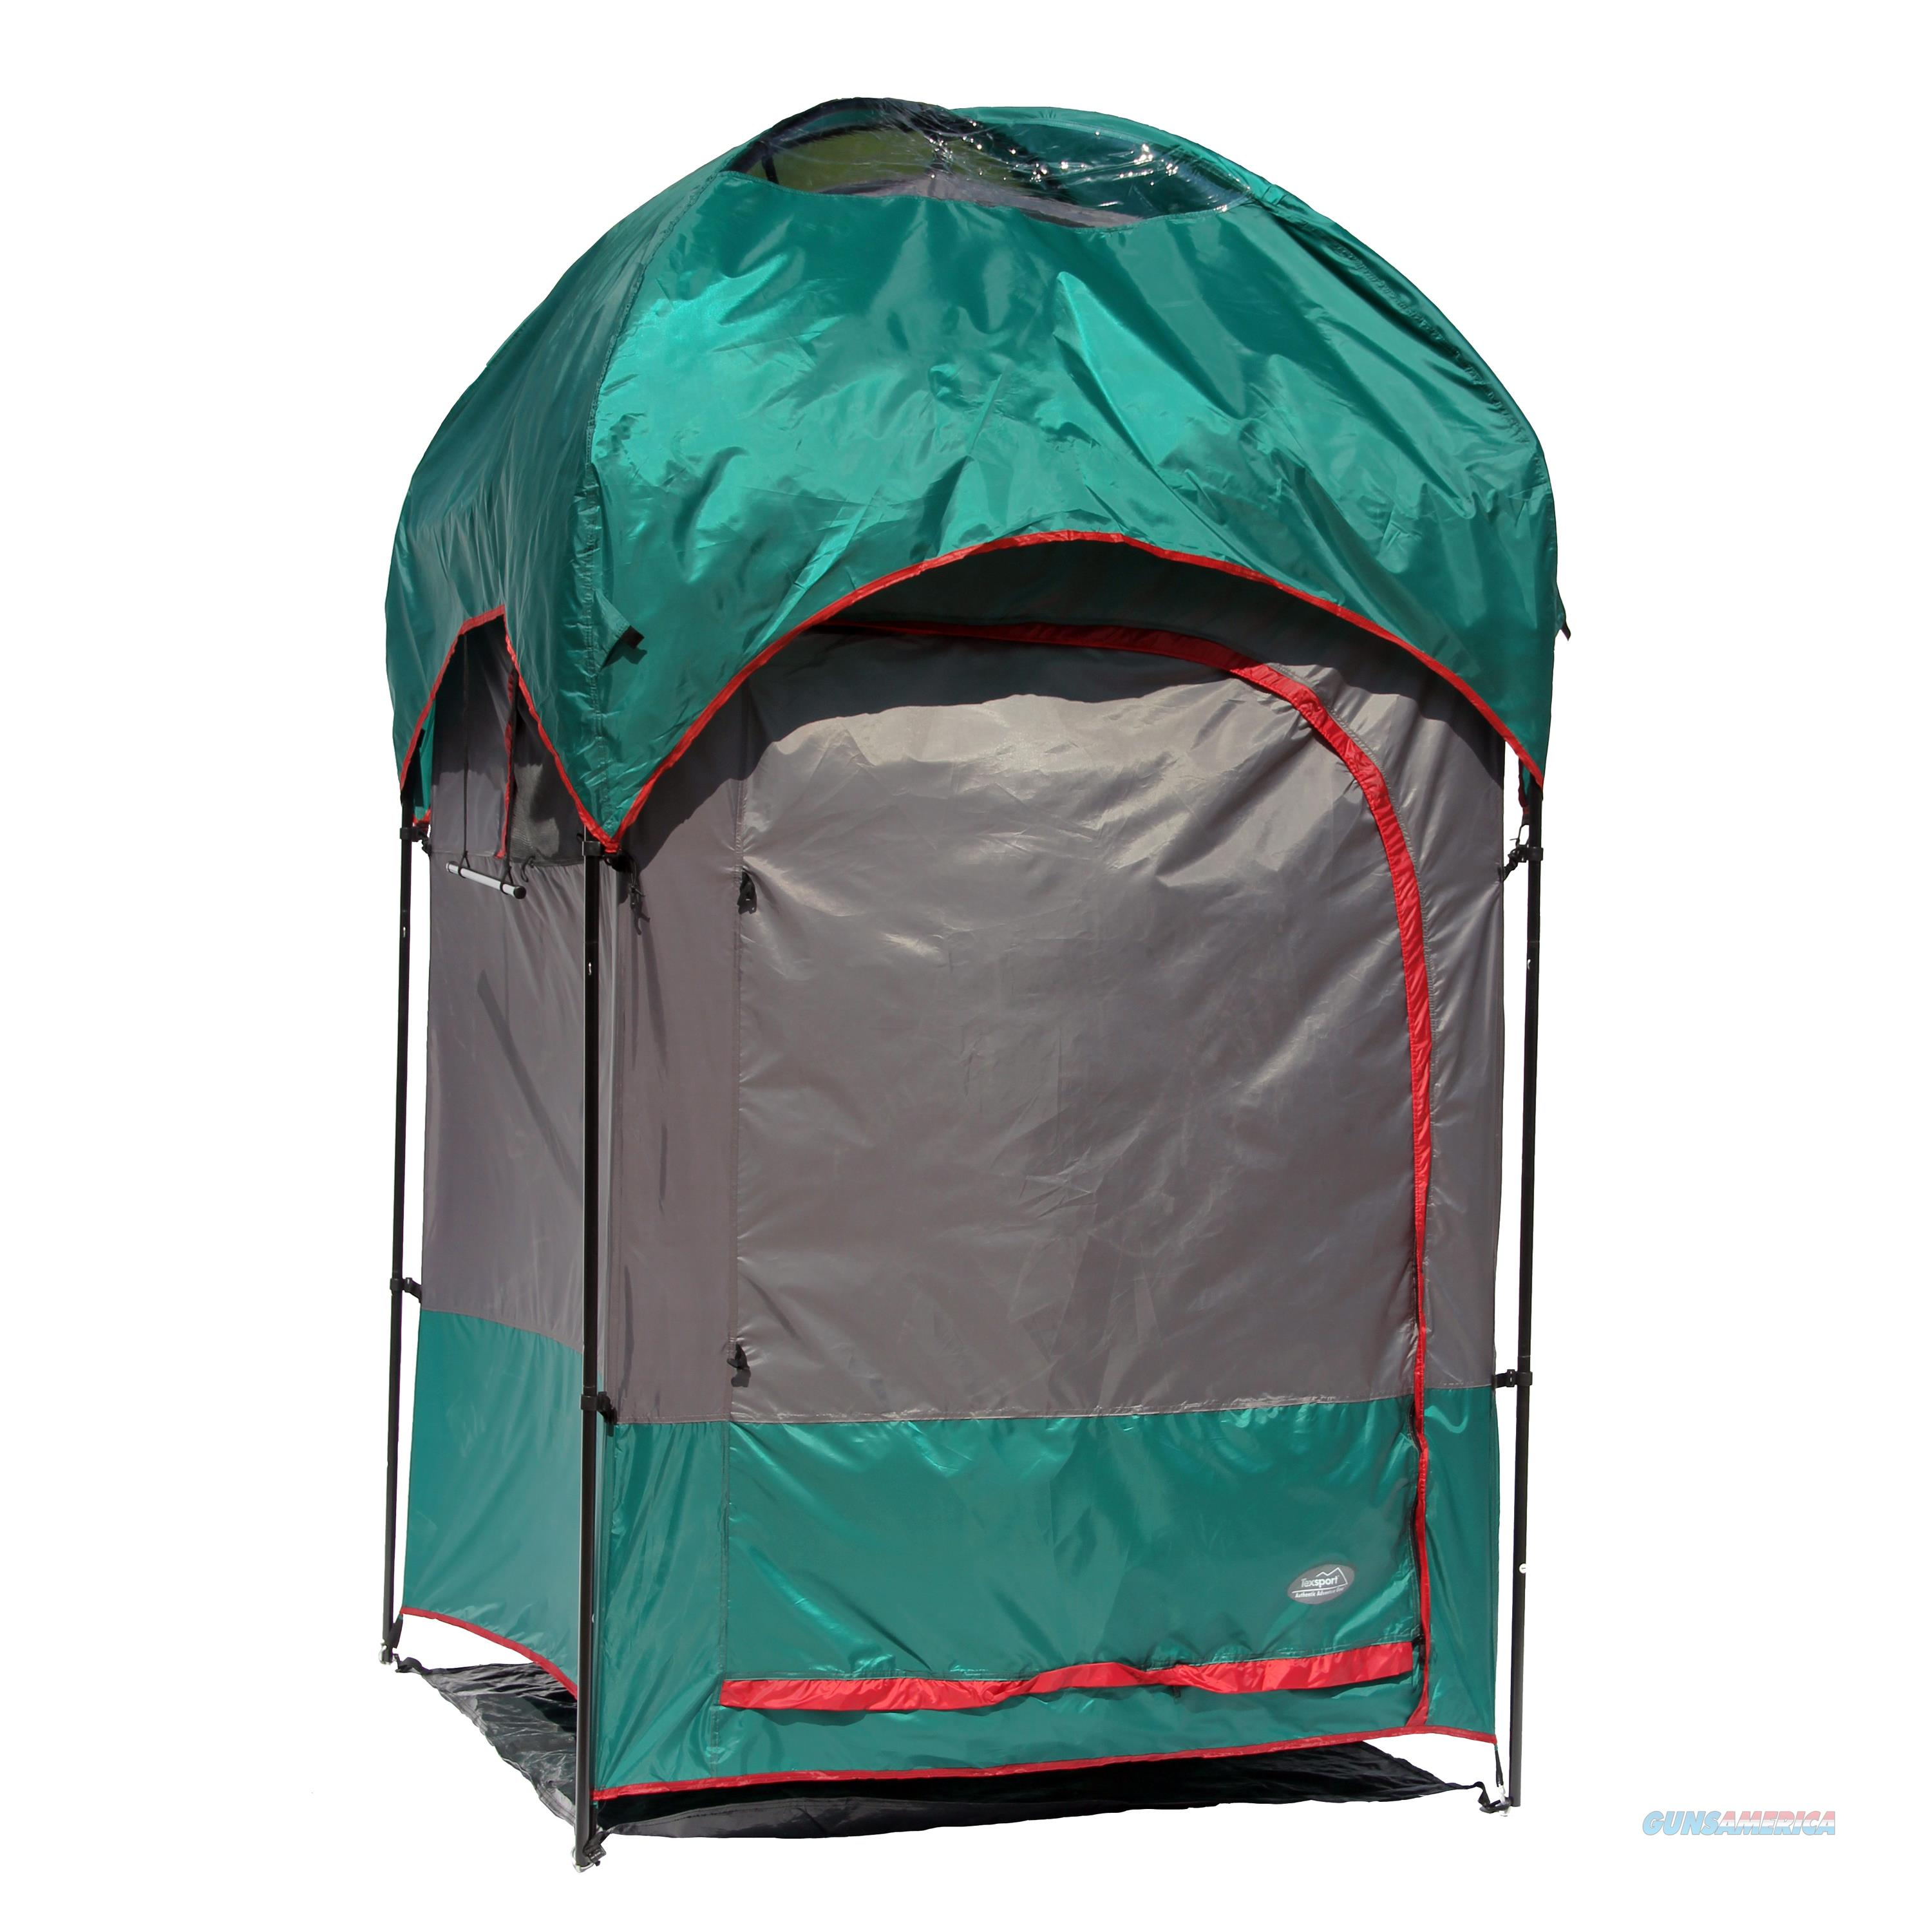 Texsport Privacy Shelter 01082  Non-Guns > Military > Camping/Survival